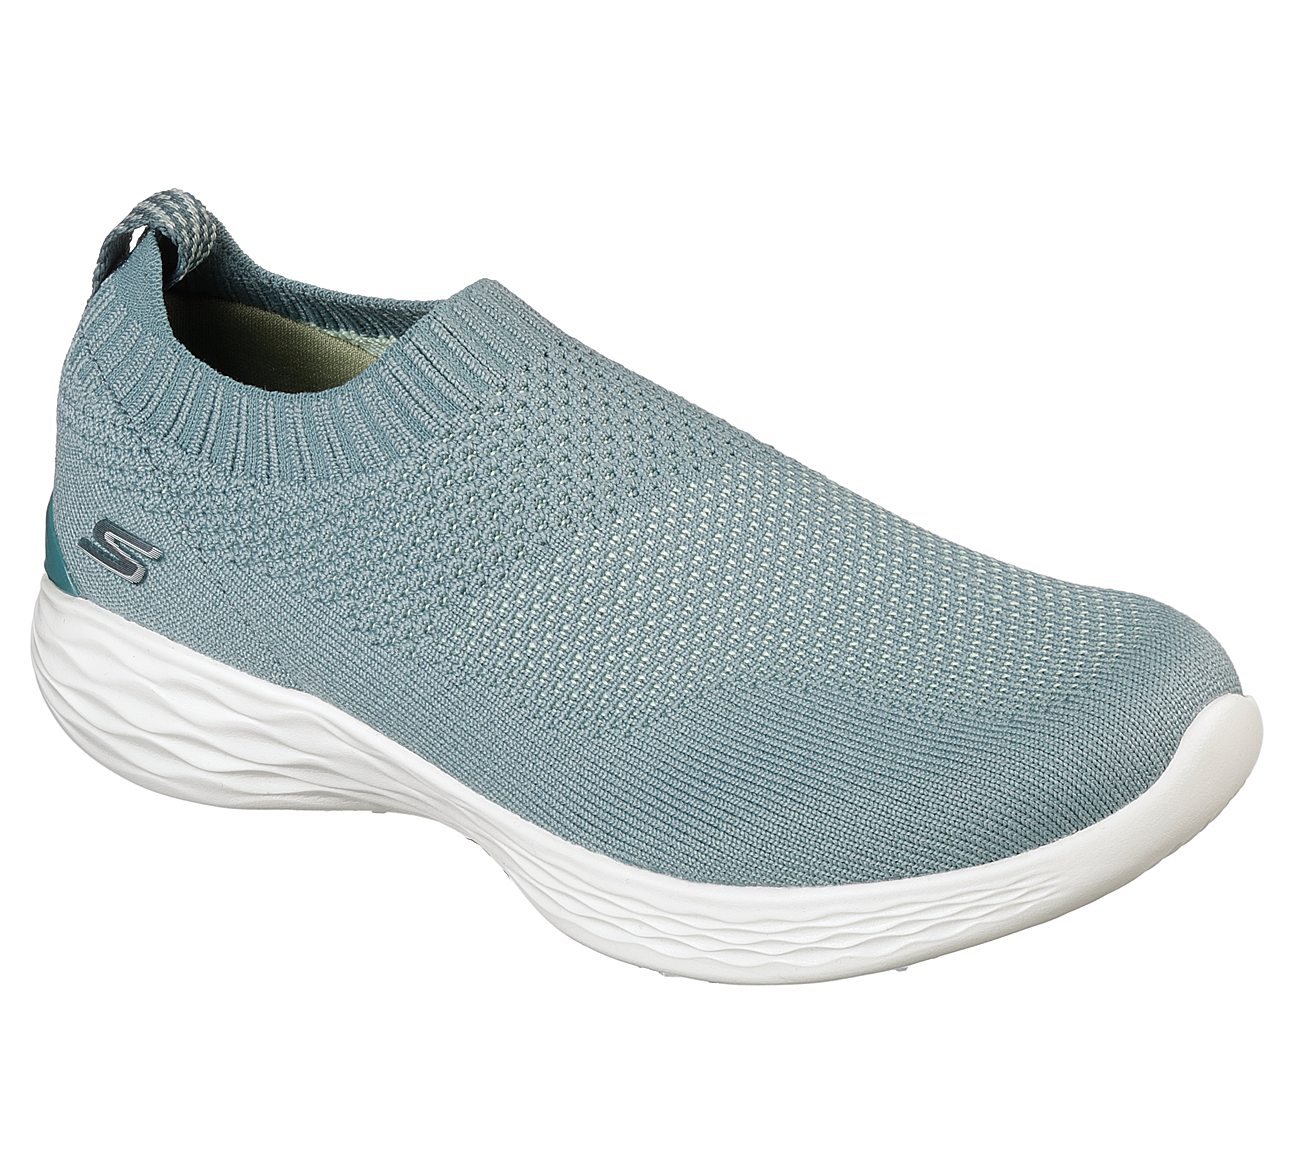 NEW SKECHERS WOMENS YOU PURE SLIP-ON SNEAKER